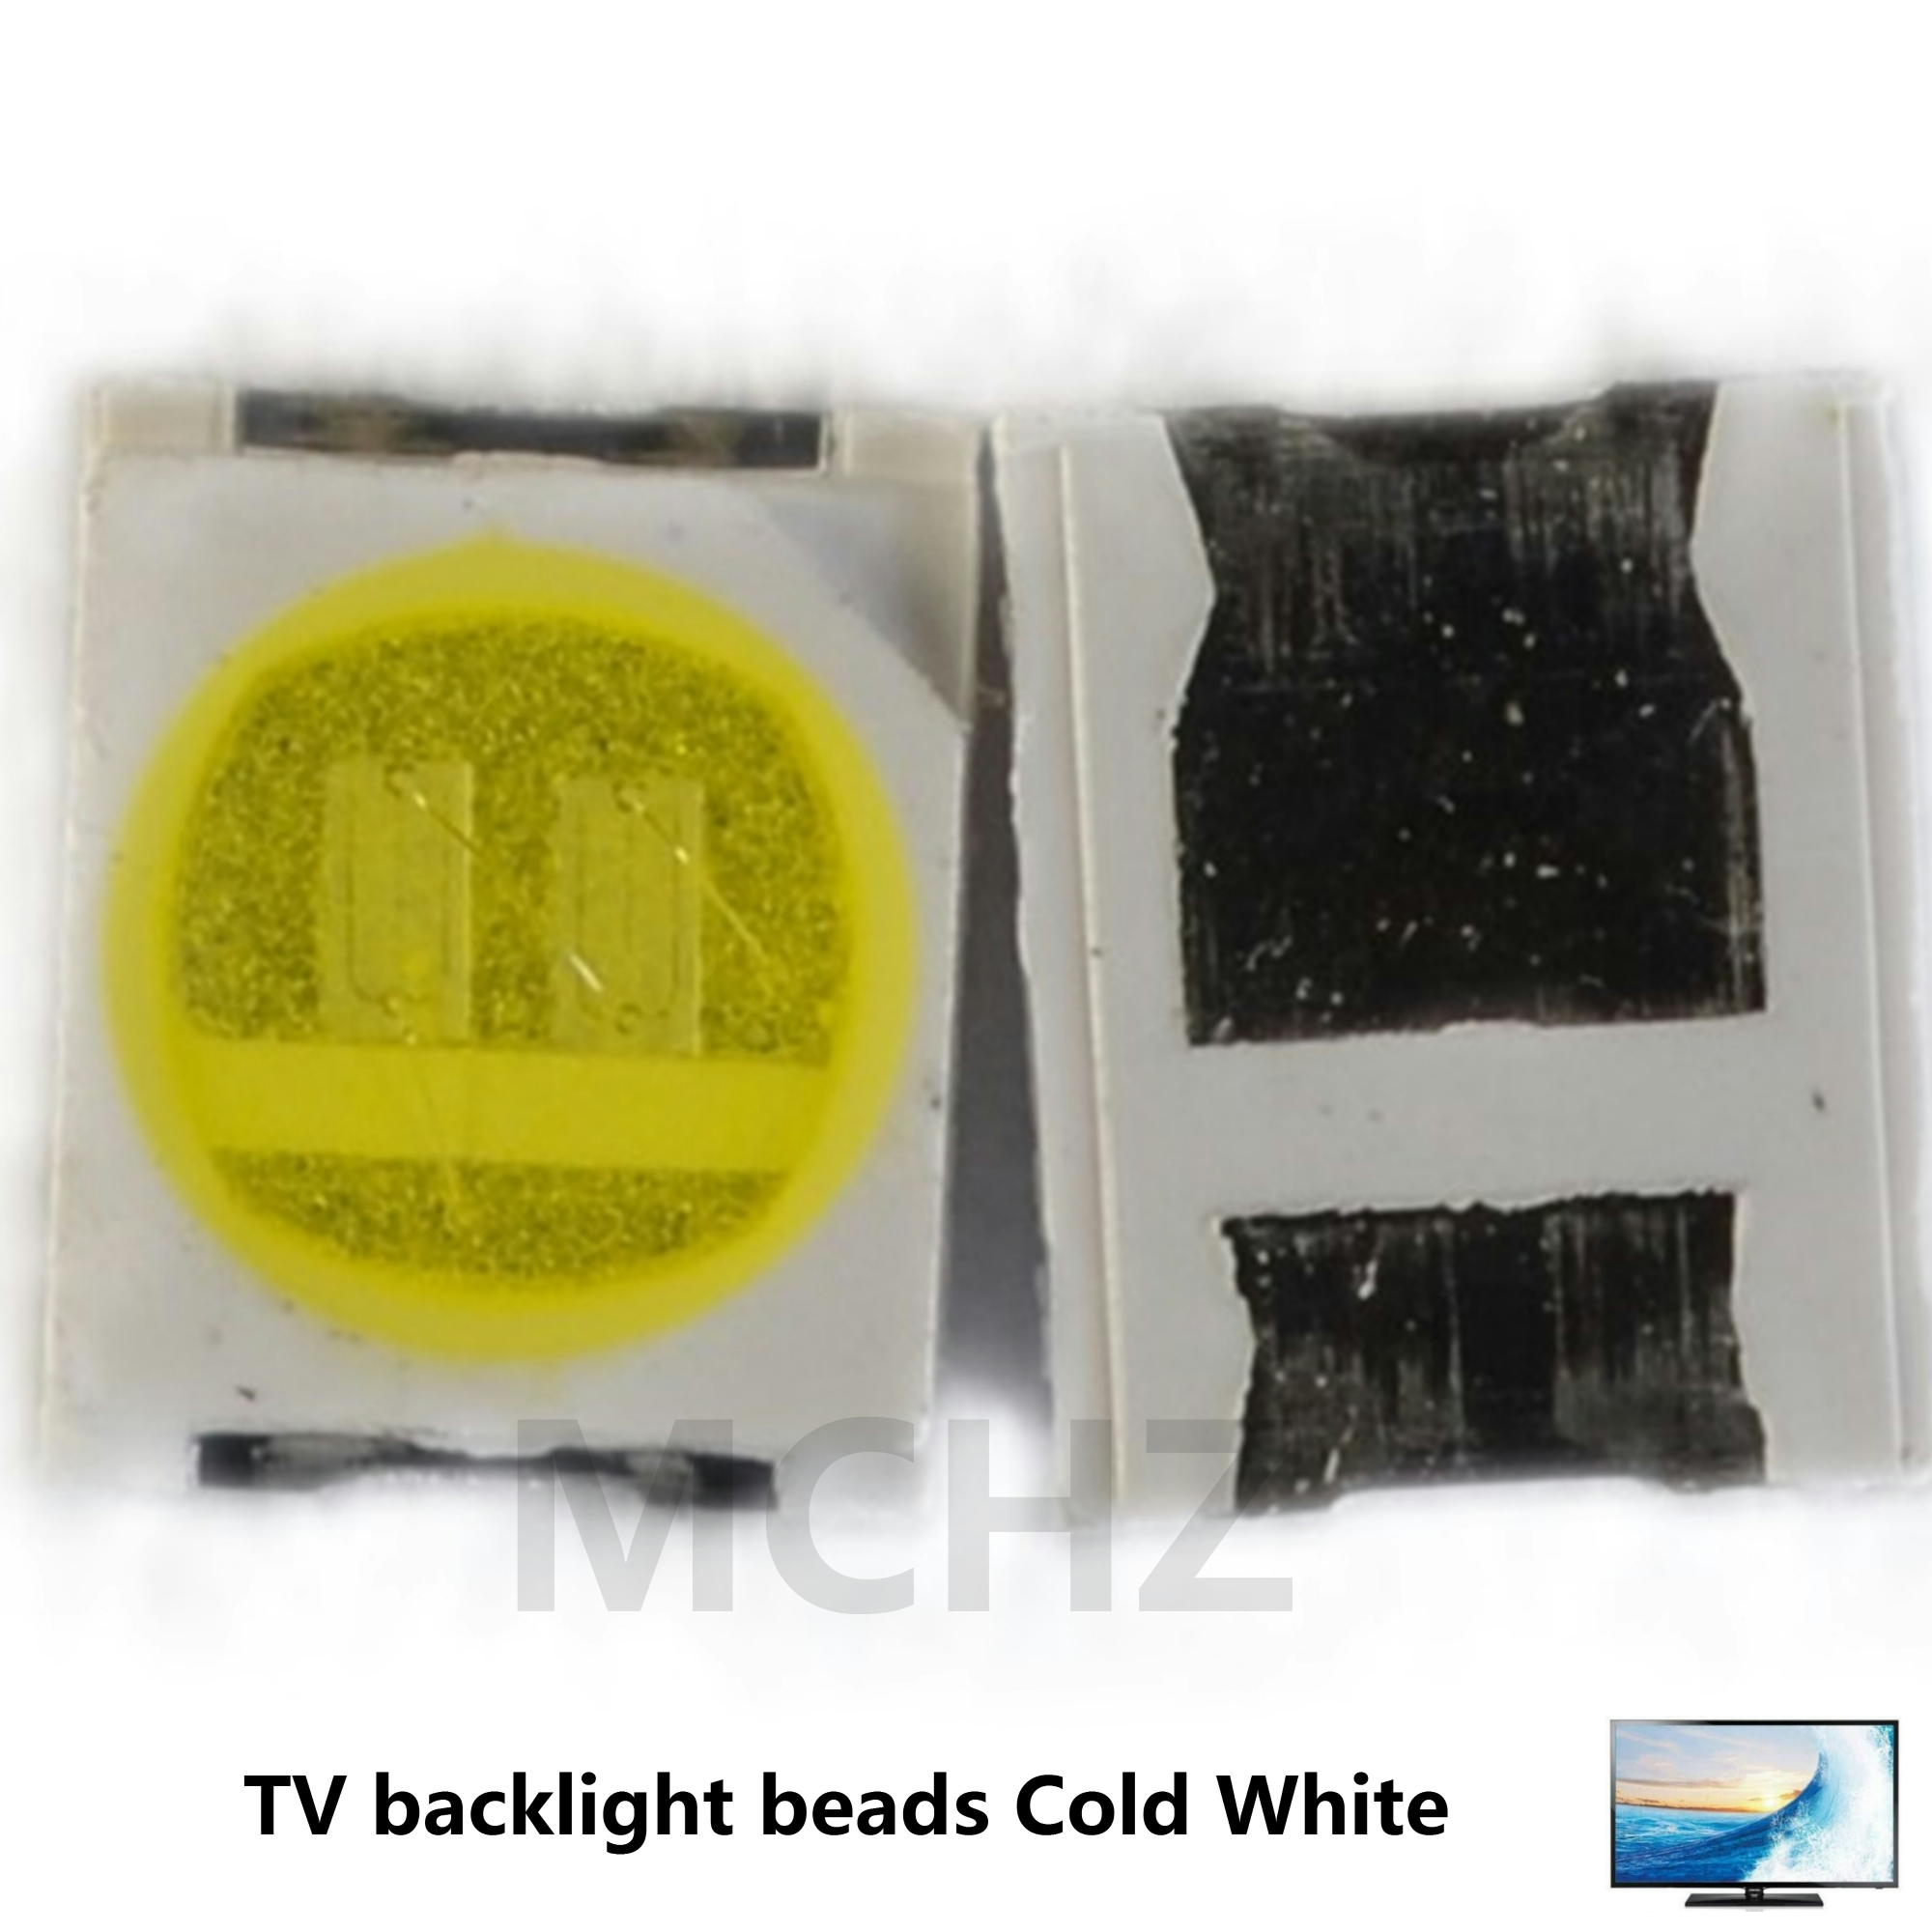 200PCS MCHZ Factory Biggest Discount JUFEI <font><b>LED</b></font> TV Backlight 1210 3528 <font><b>2835</b></font> 6V-6.4V <font><b>150MA</b></font> 1W 92LM Cool white image